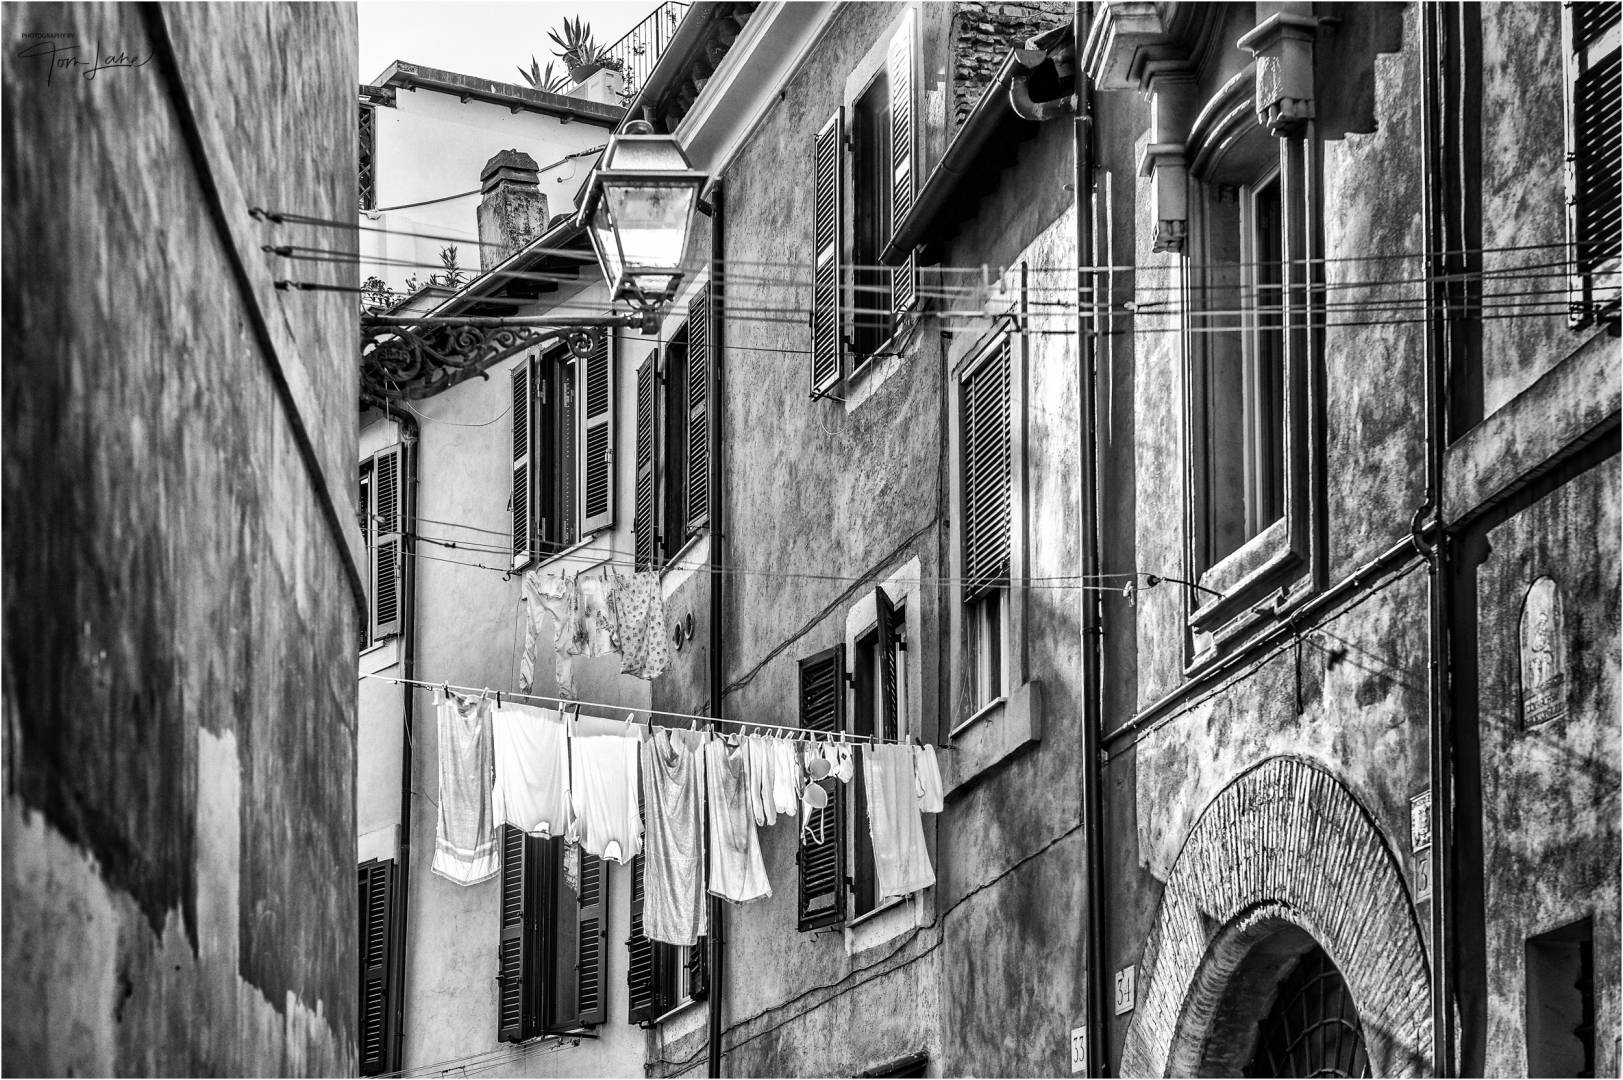 """Drying the Washing"", taken in Rome (Leica Monochrom with the Apo-Summicron 75mm f/2 ASPH lens)"